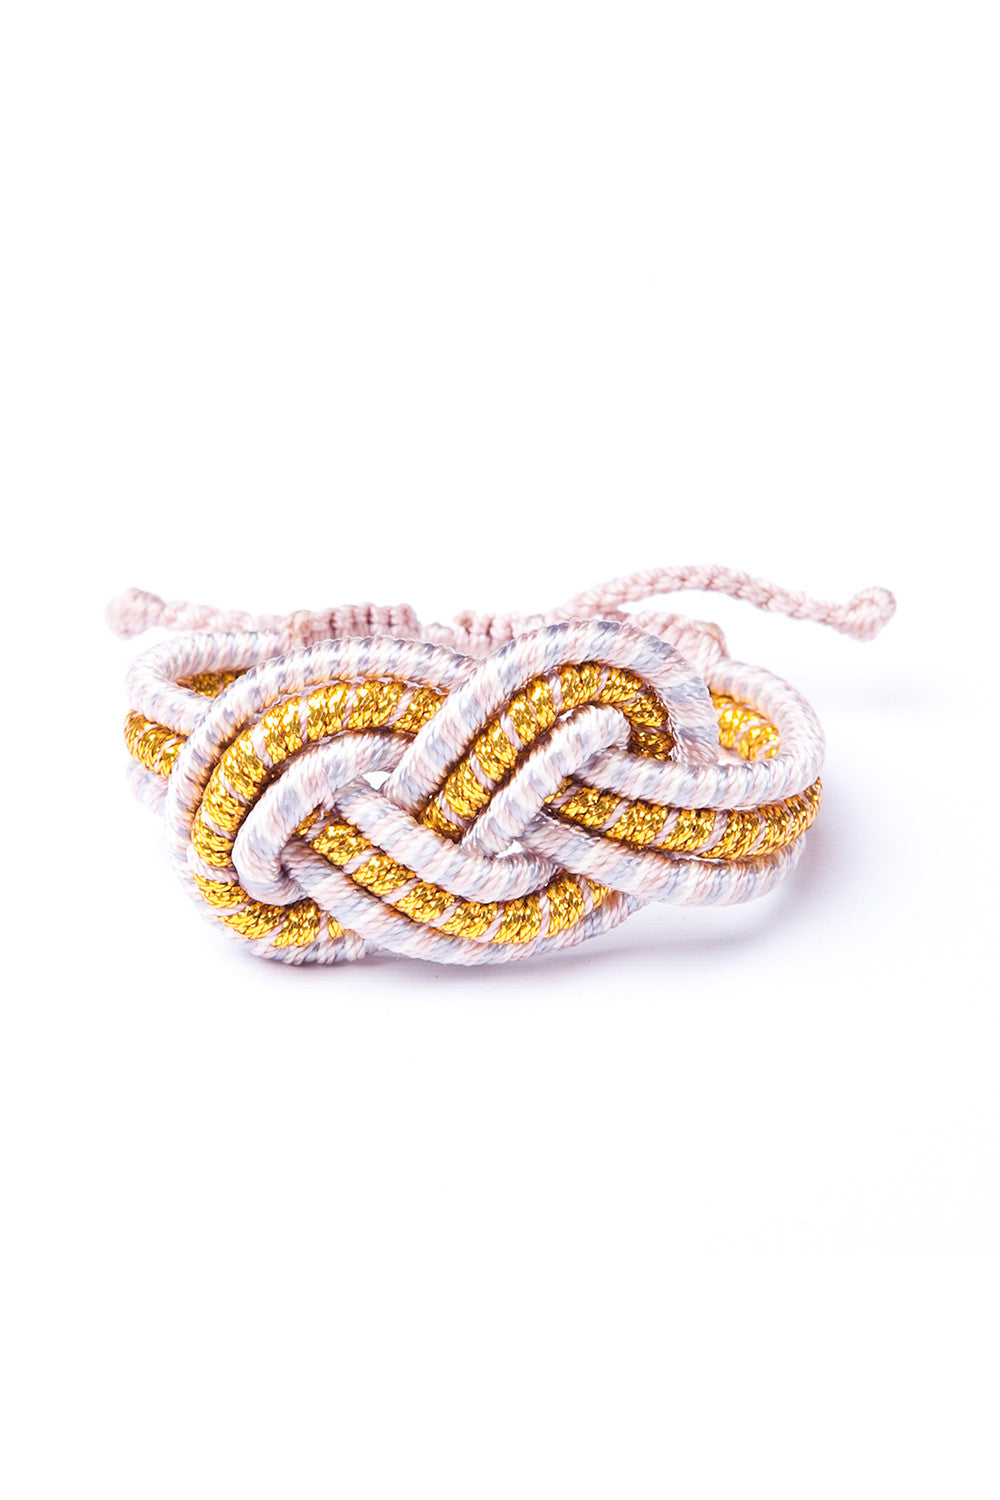 Twisted Knot Stripe Bracelet in Gold